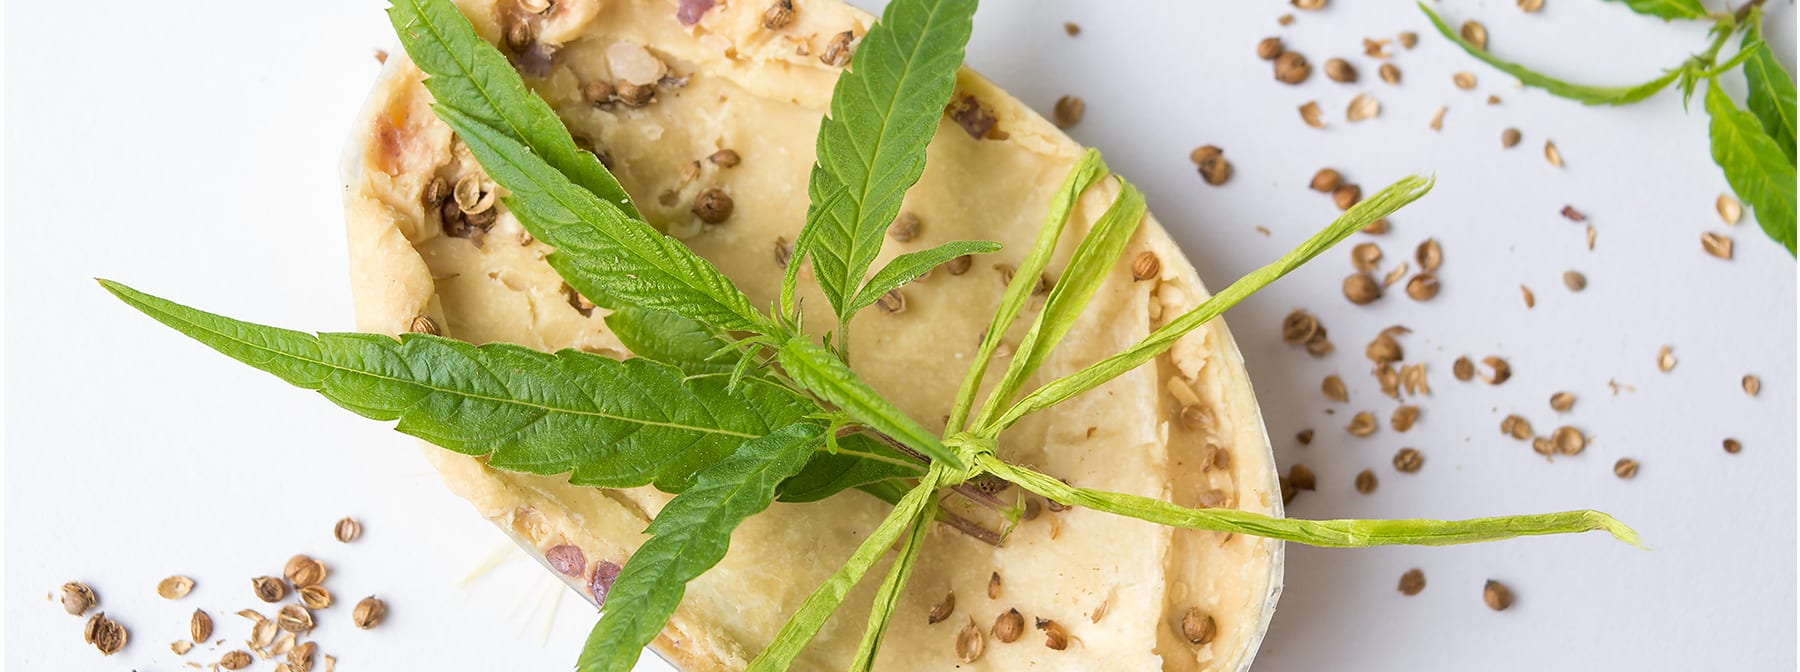 Cannabis is the Newest Member in the Organic Skincare Family